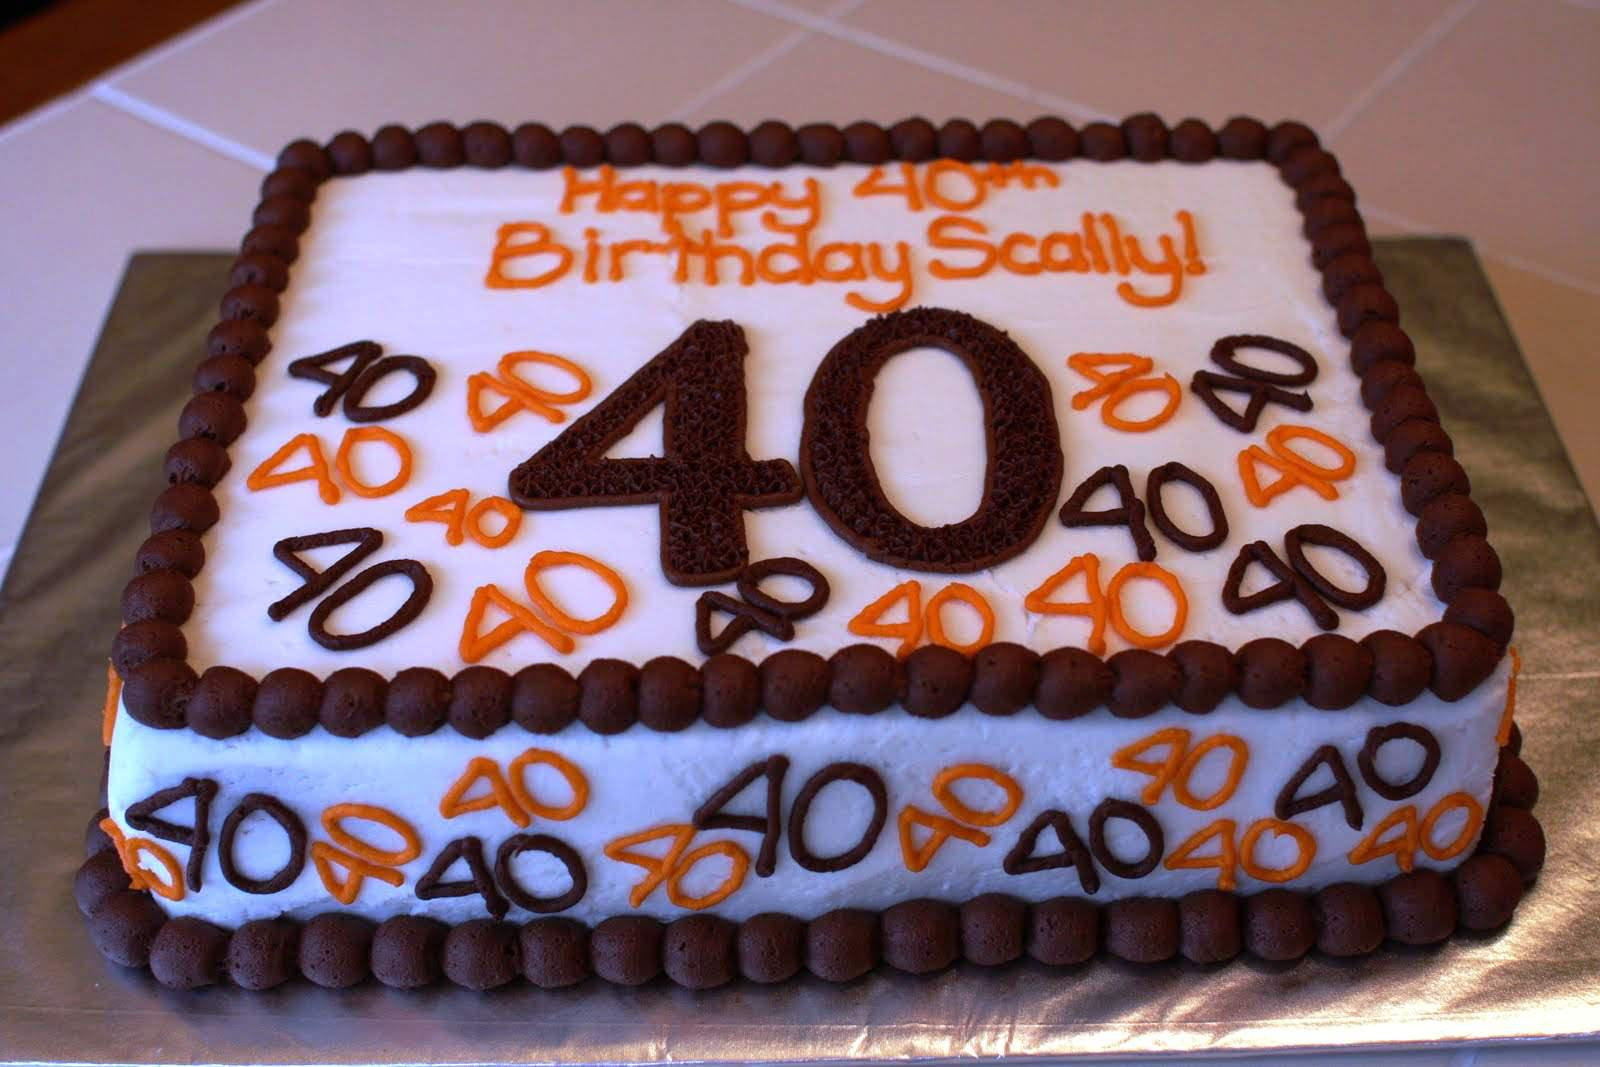 Birthday Cake Ideas For Men 40th Protoblogr Design